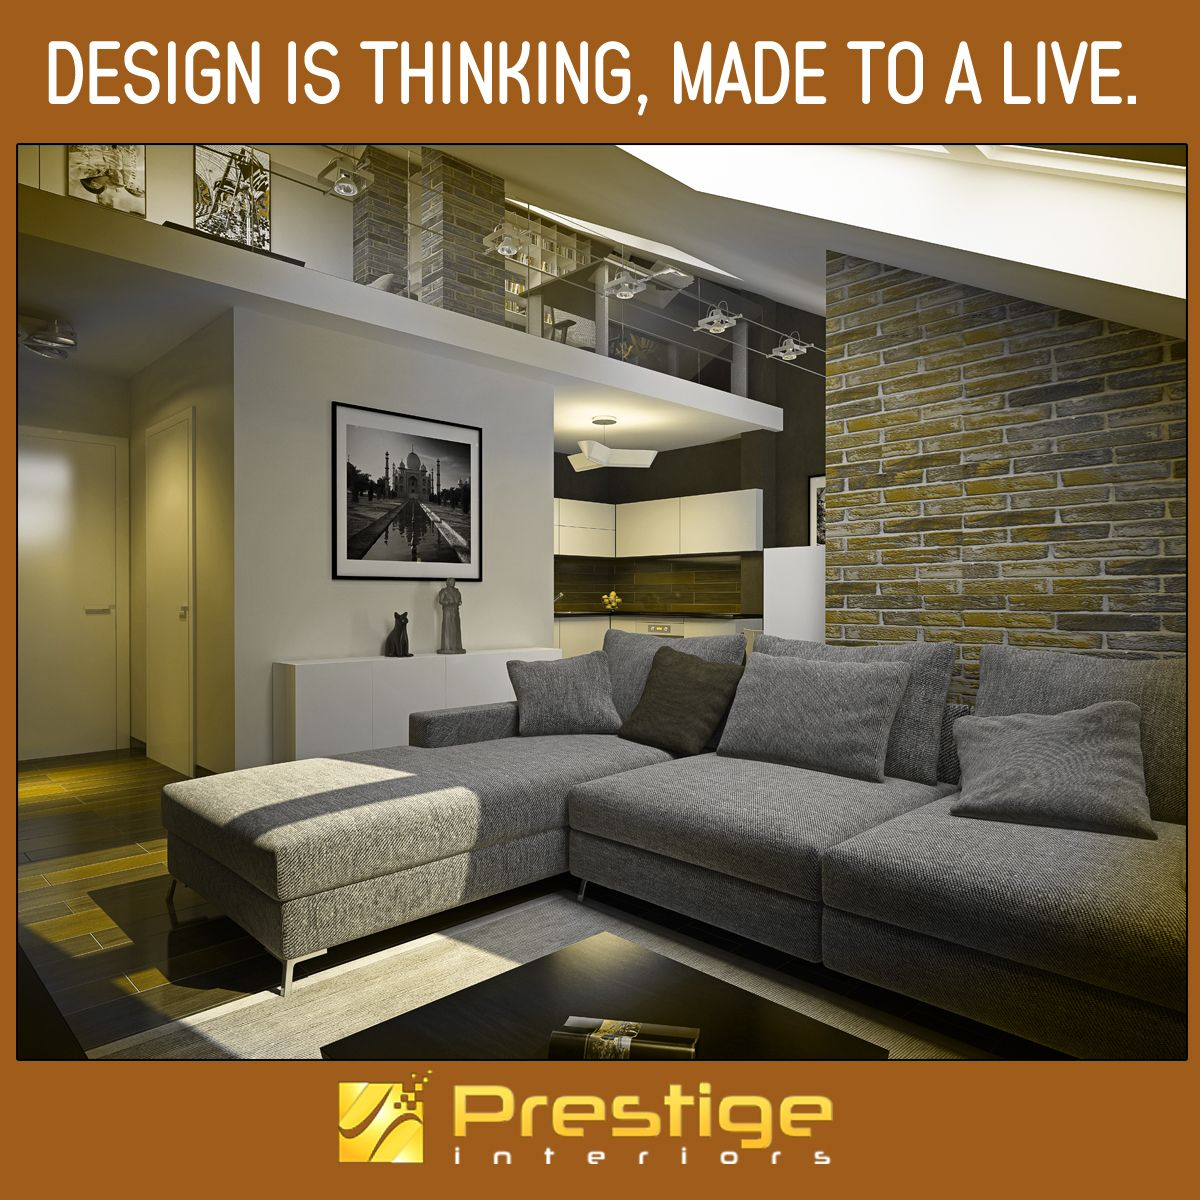 Design Is Thinking, Made To A Live. #Prestige Interiors Hyderabad Http:/